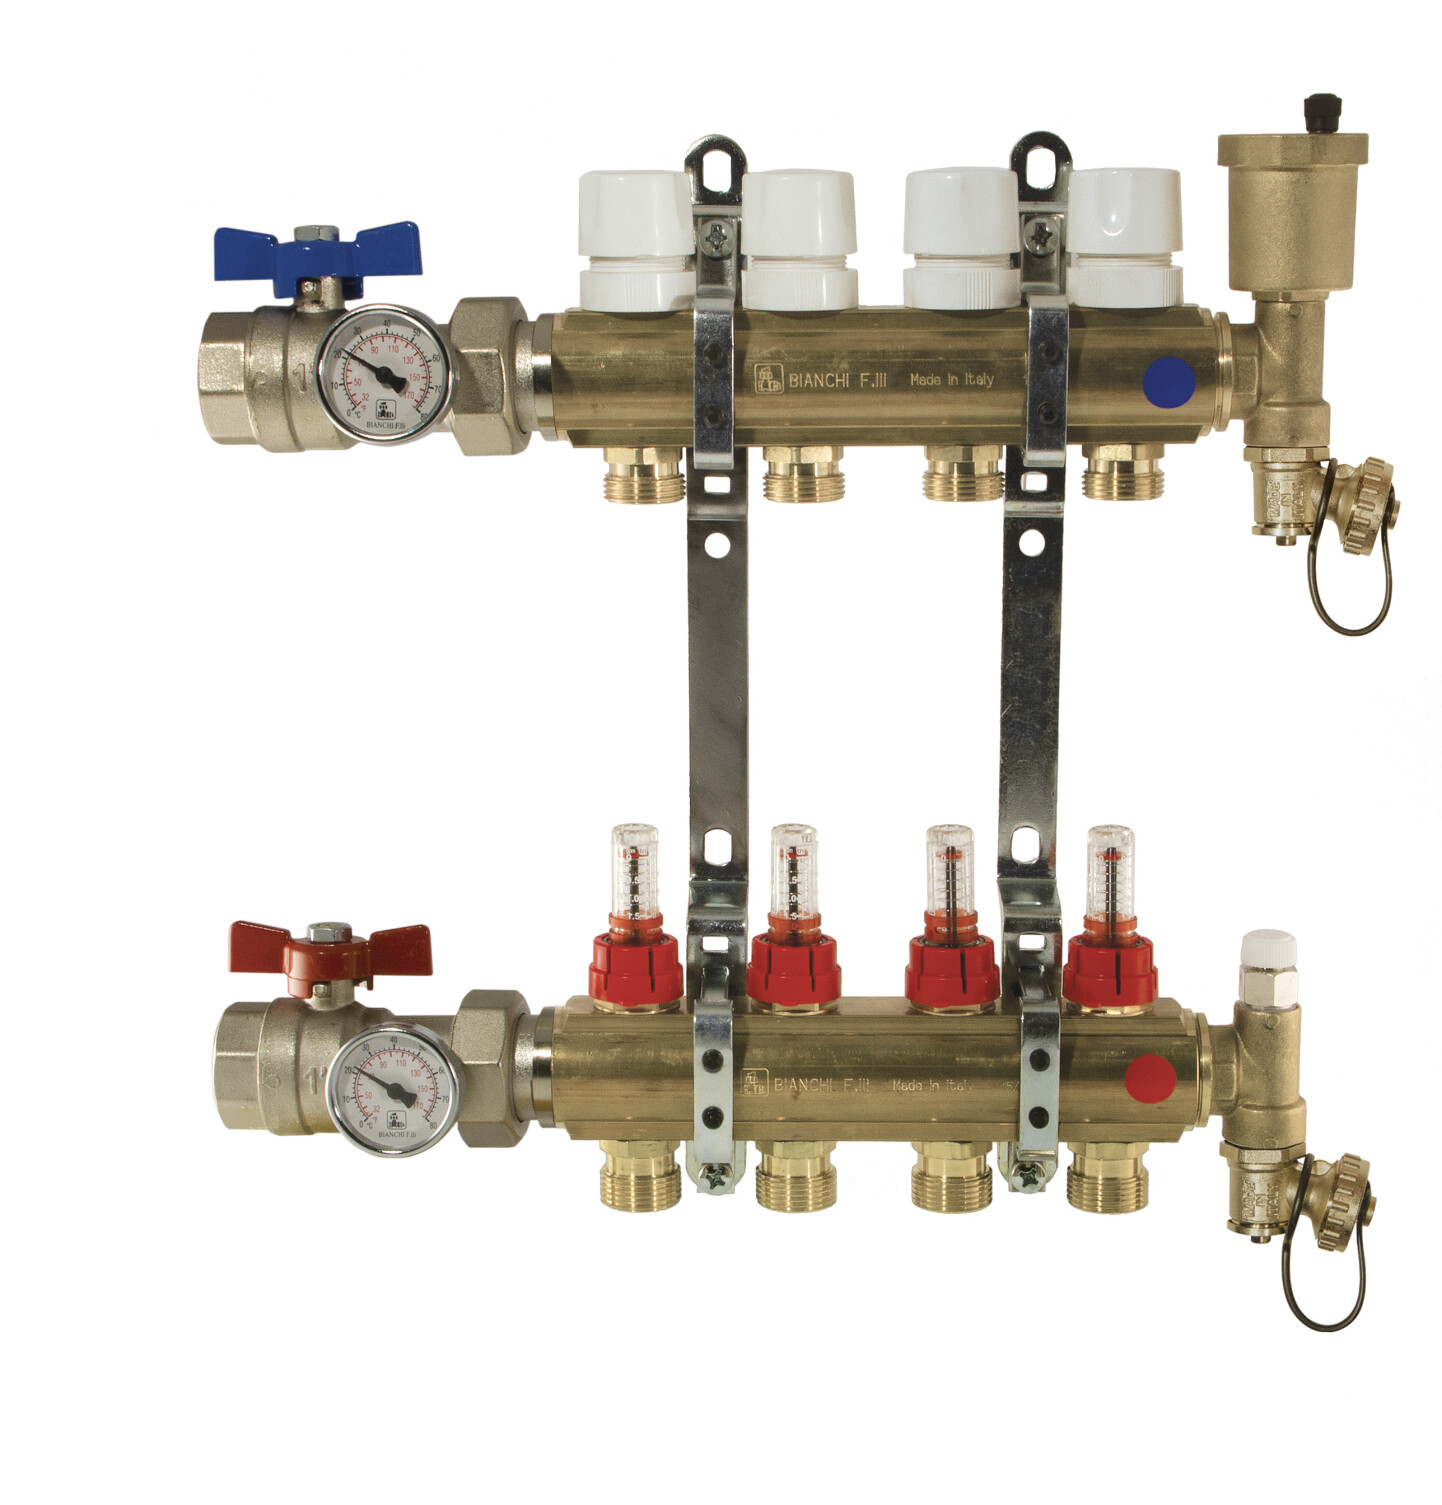 Brass manifolds therm. valves and flowmeters, valves, disch.